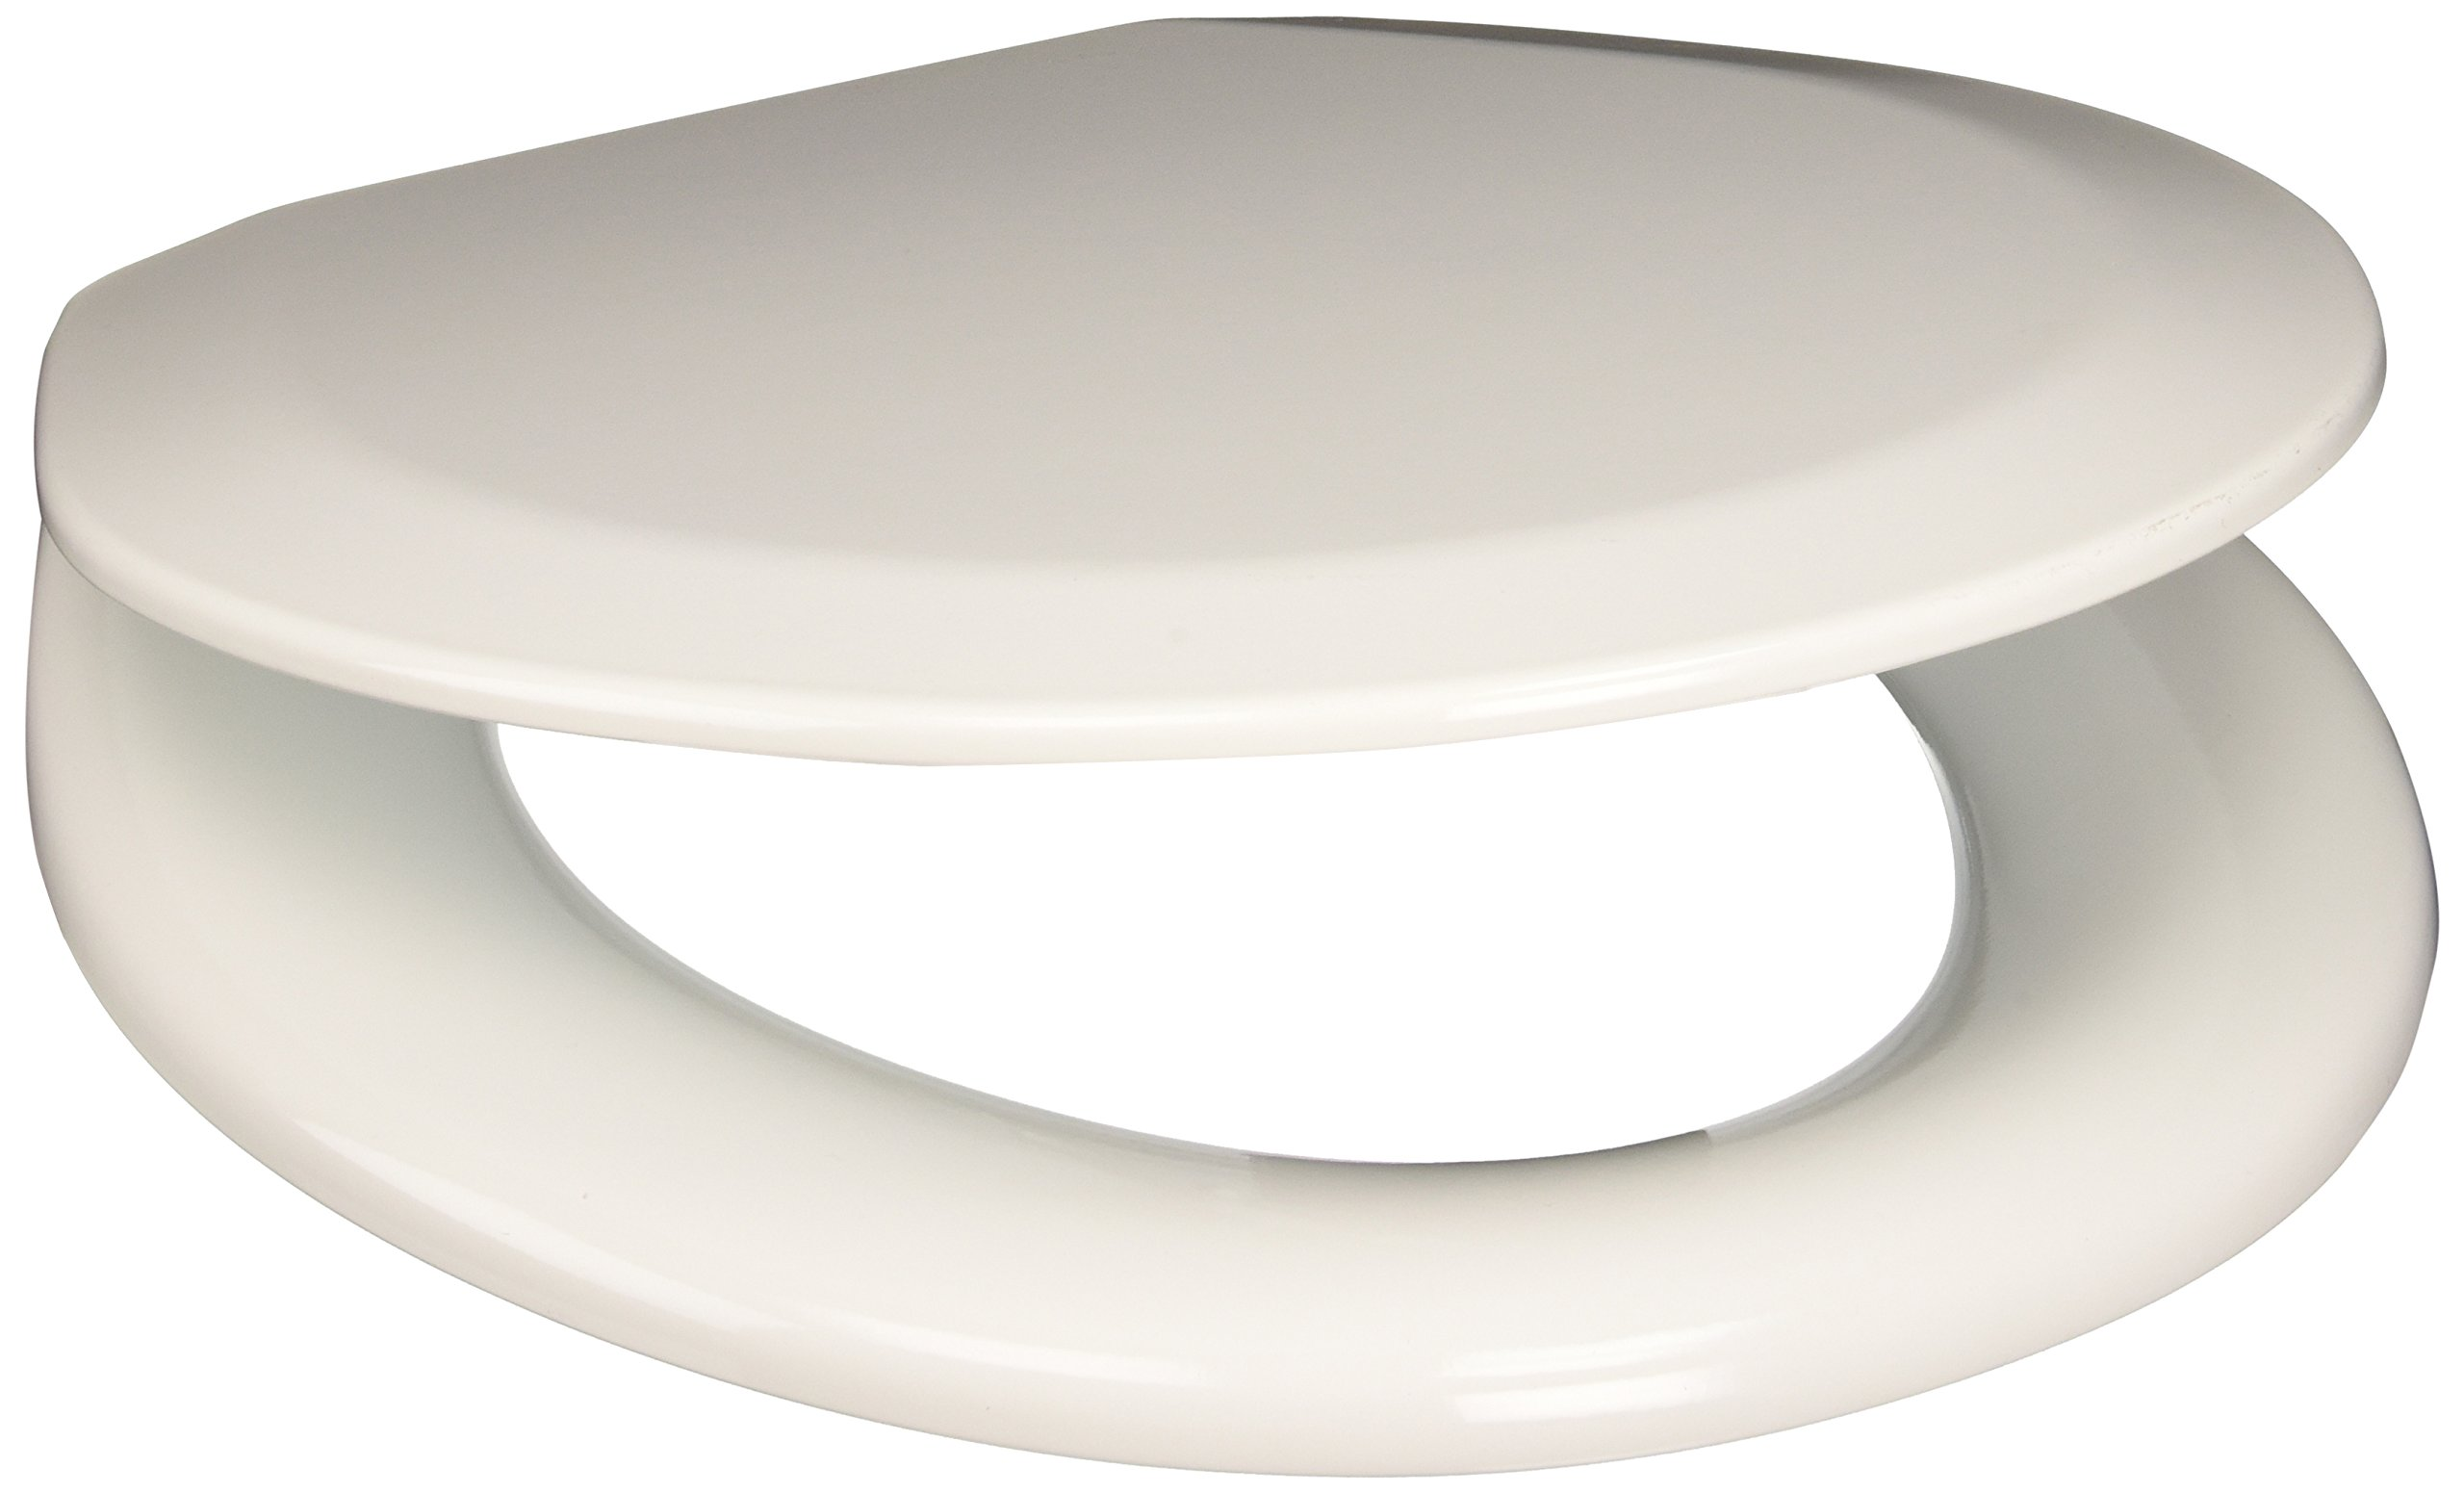 PlumbTech 113-04 Deluxe Molded Wood Round Toilet Seat with Adjustable Hinge, Cotton White